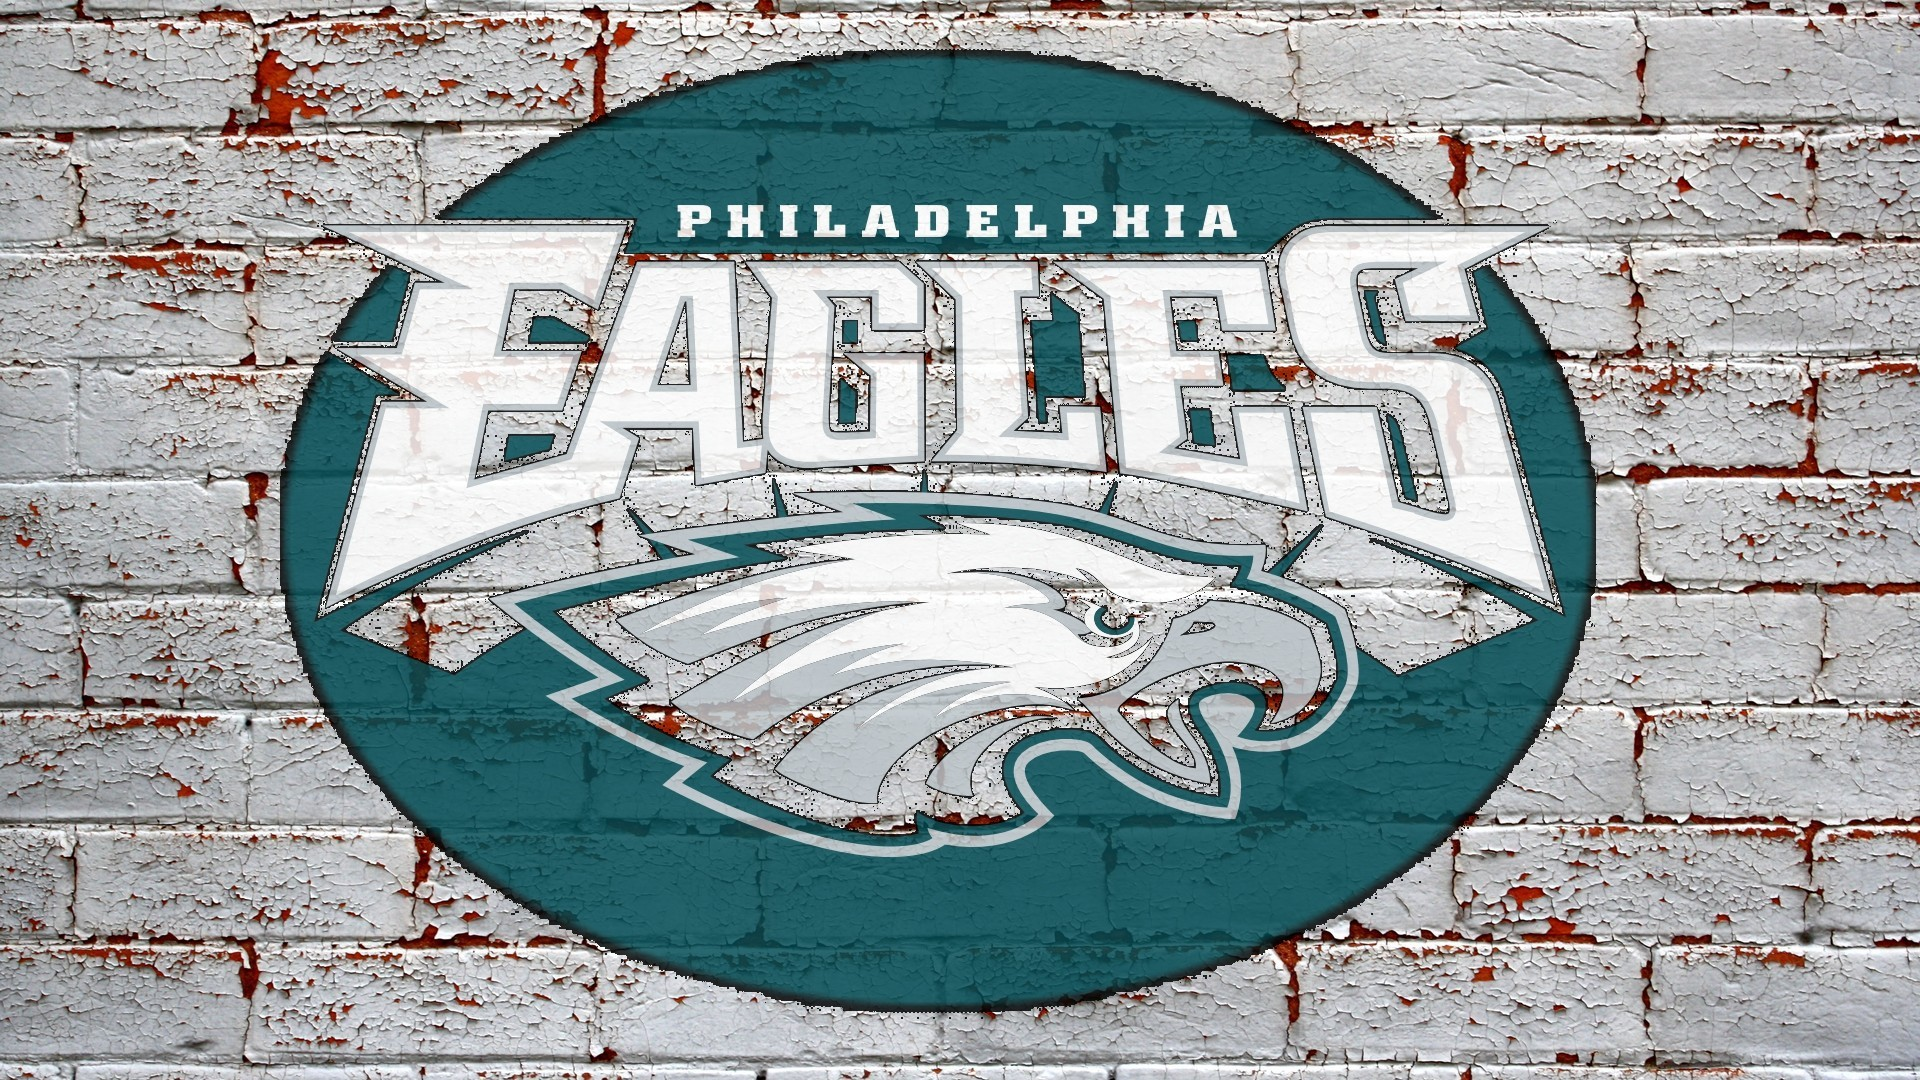 1920x1080 Hd Philadelphia Eagles wallpaper